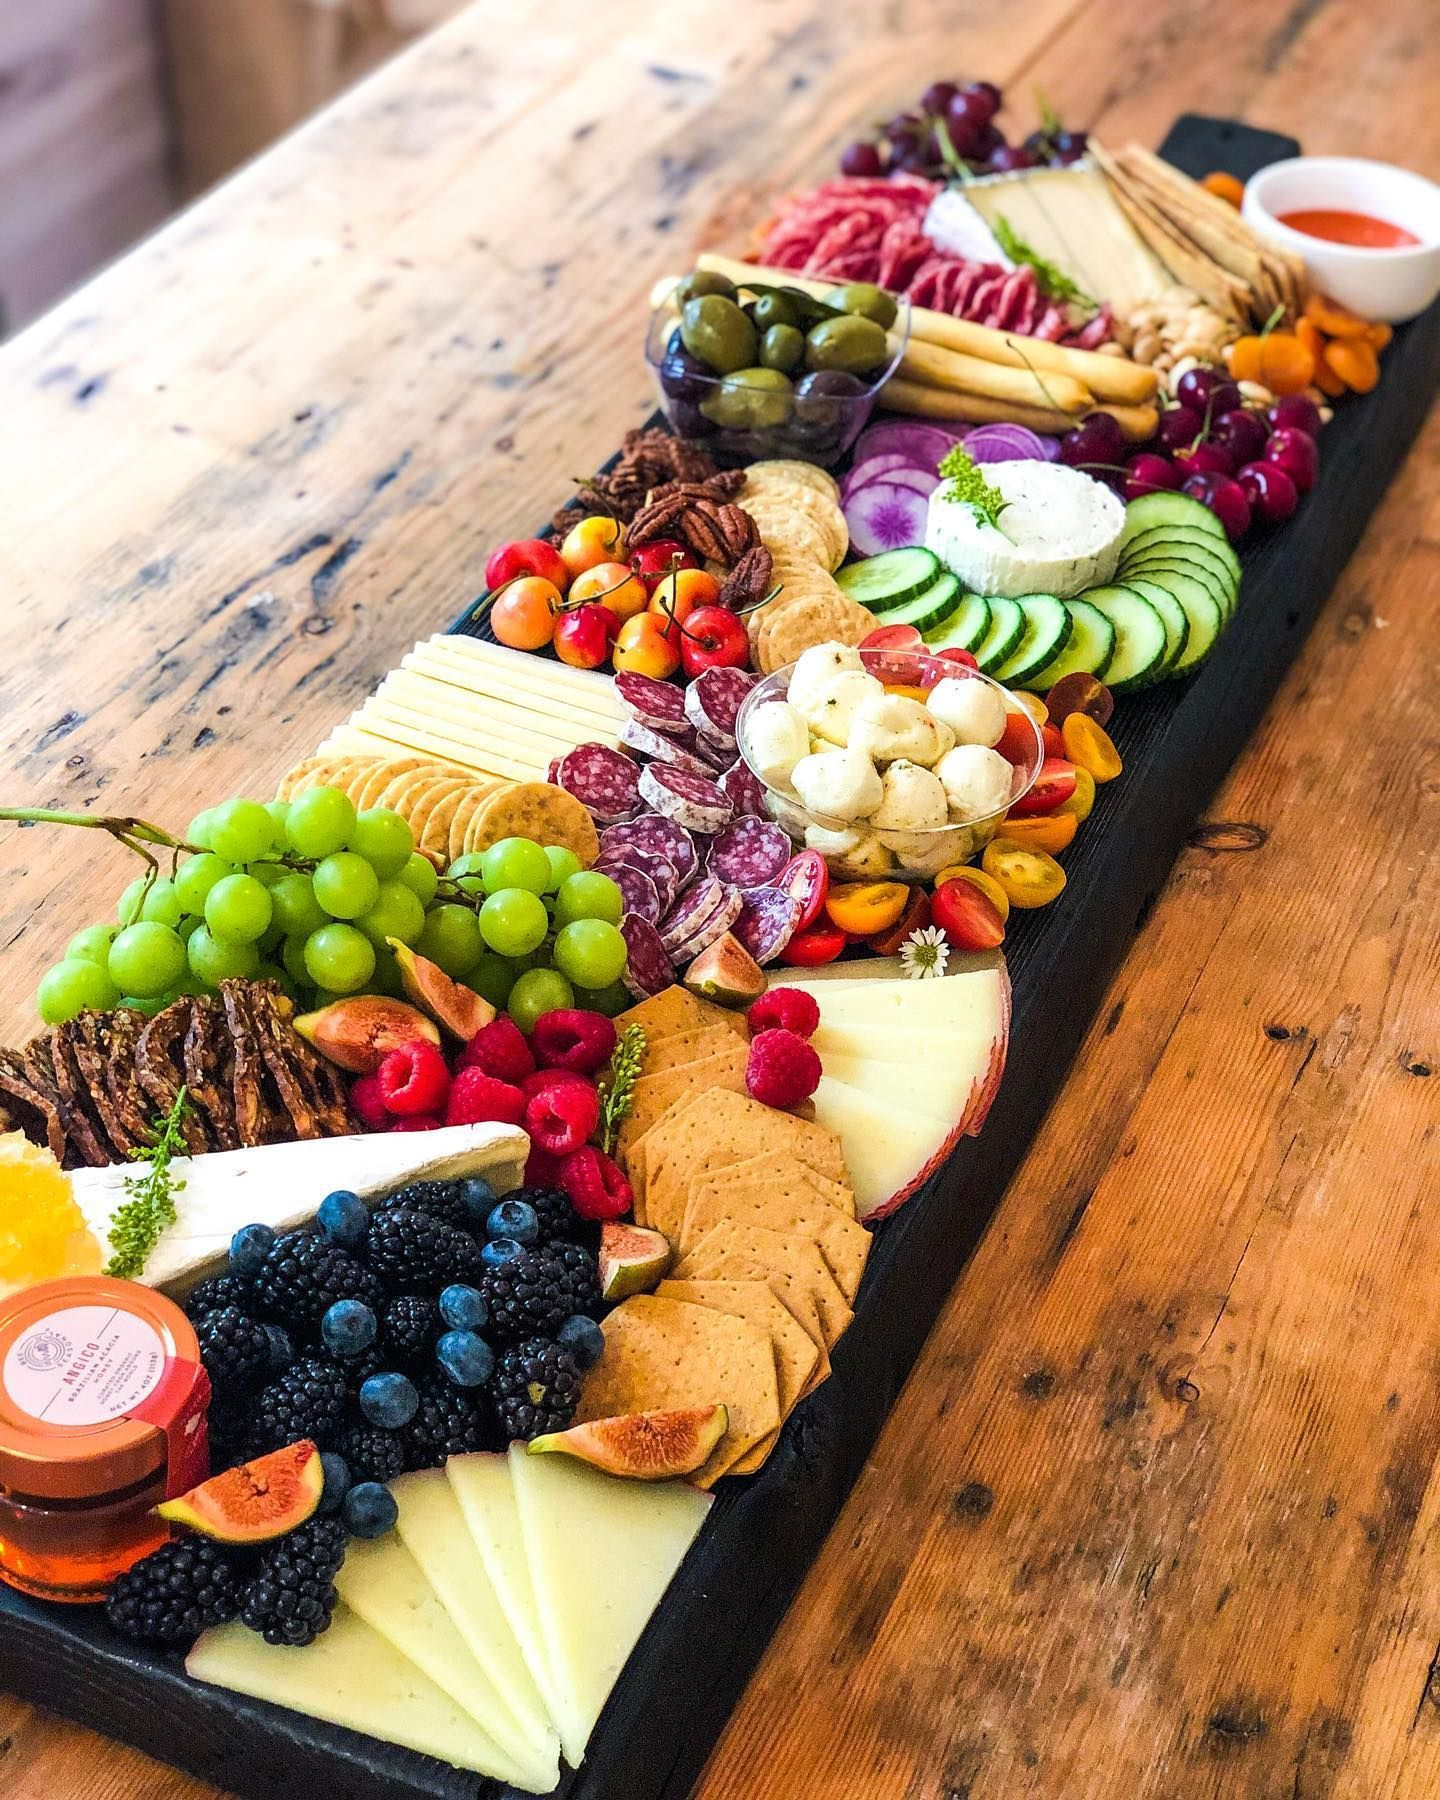 Murray's Mini Brie 8 oz - Cheese Board Inspiration #koudehapjes